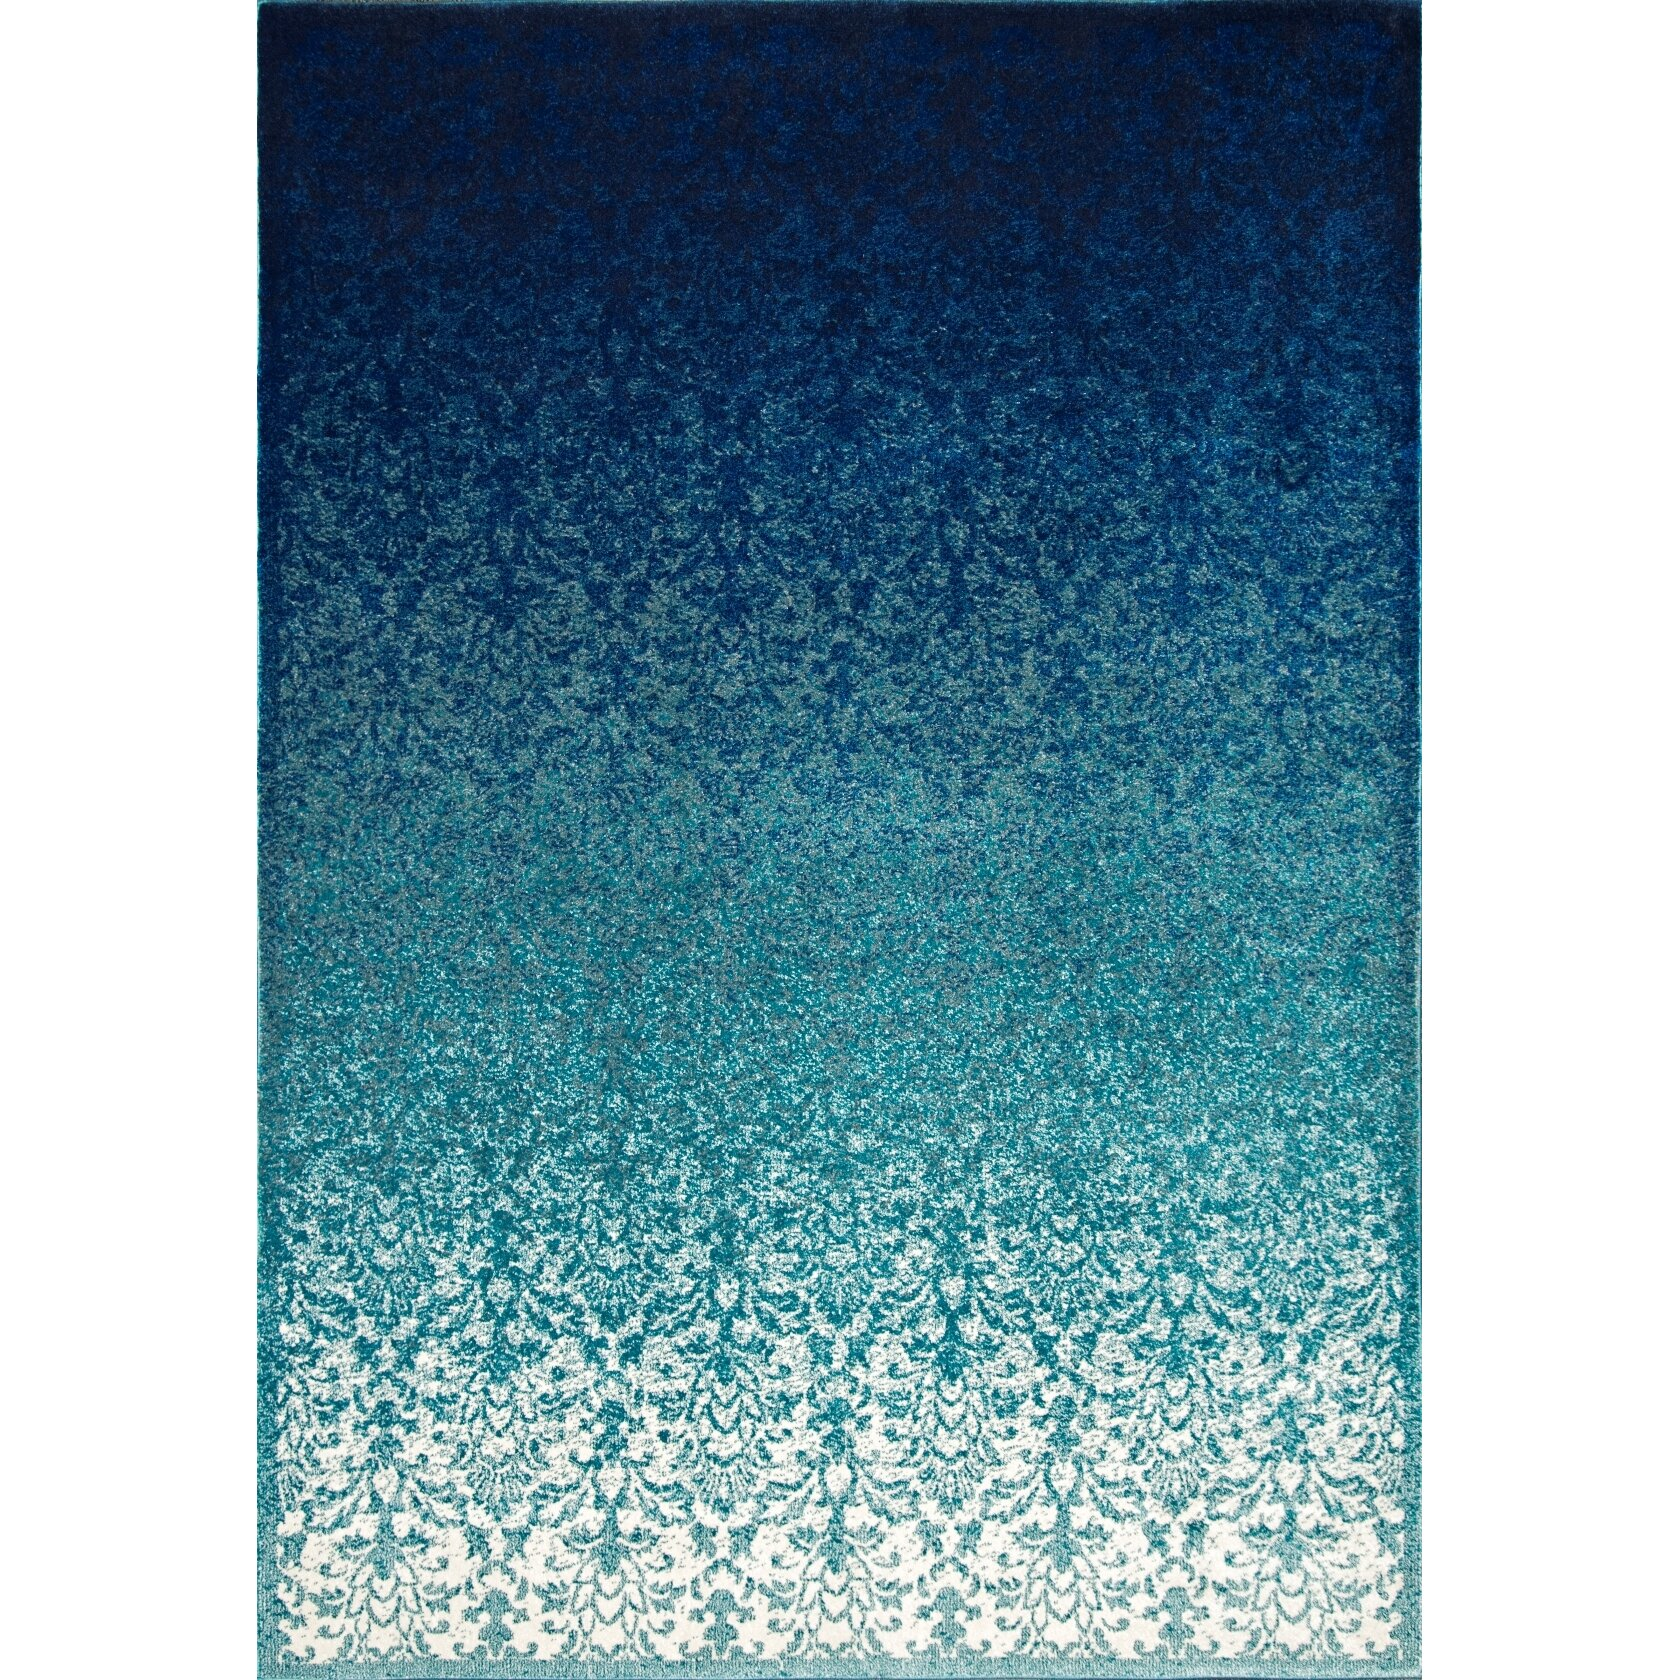 nuLOOM Crandall Turquoise Area Rug amp Reviews Wayfair : nuLOOM Crandall Turquoise Area Rug CFDO01A from www.wayfair.com size 1680 x 1680 jpeg 1199kB